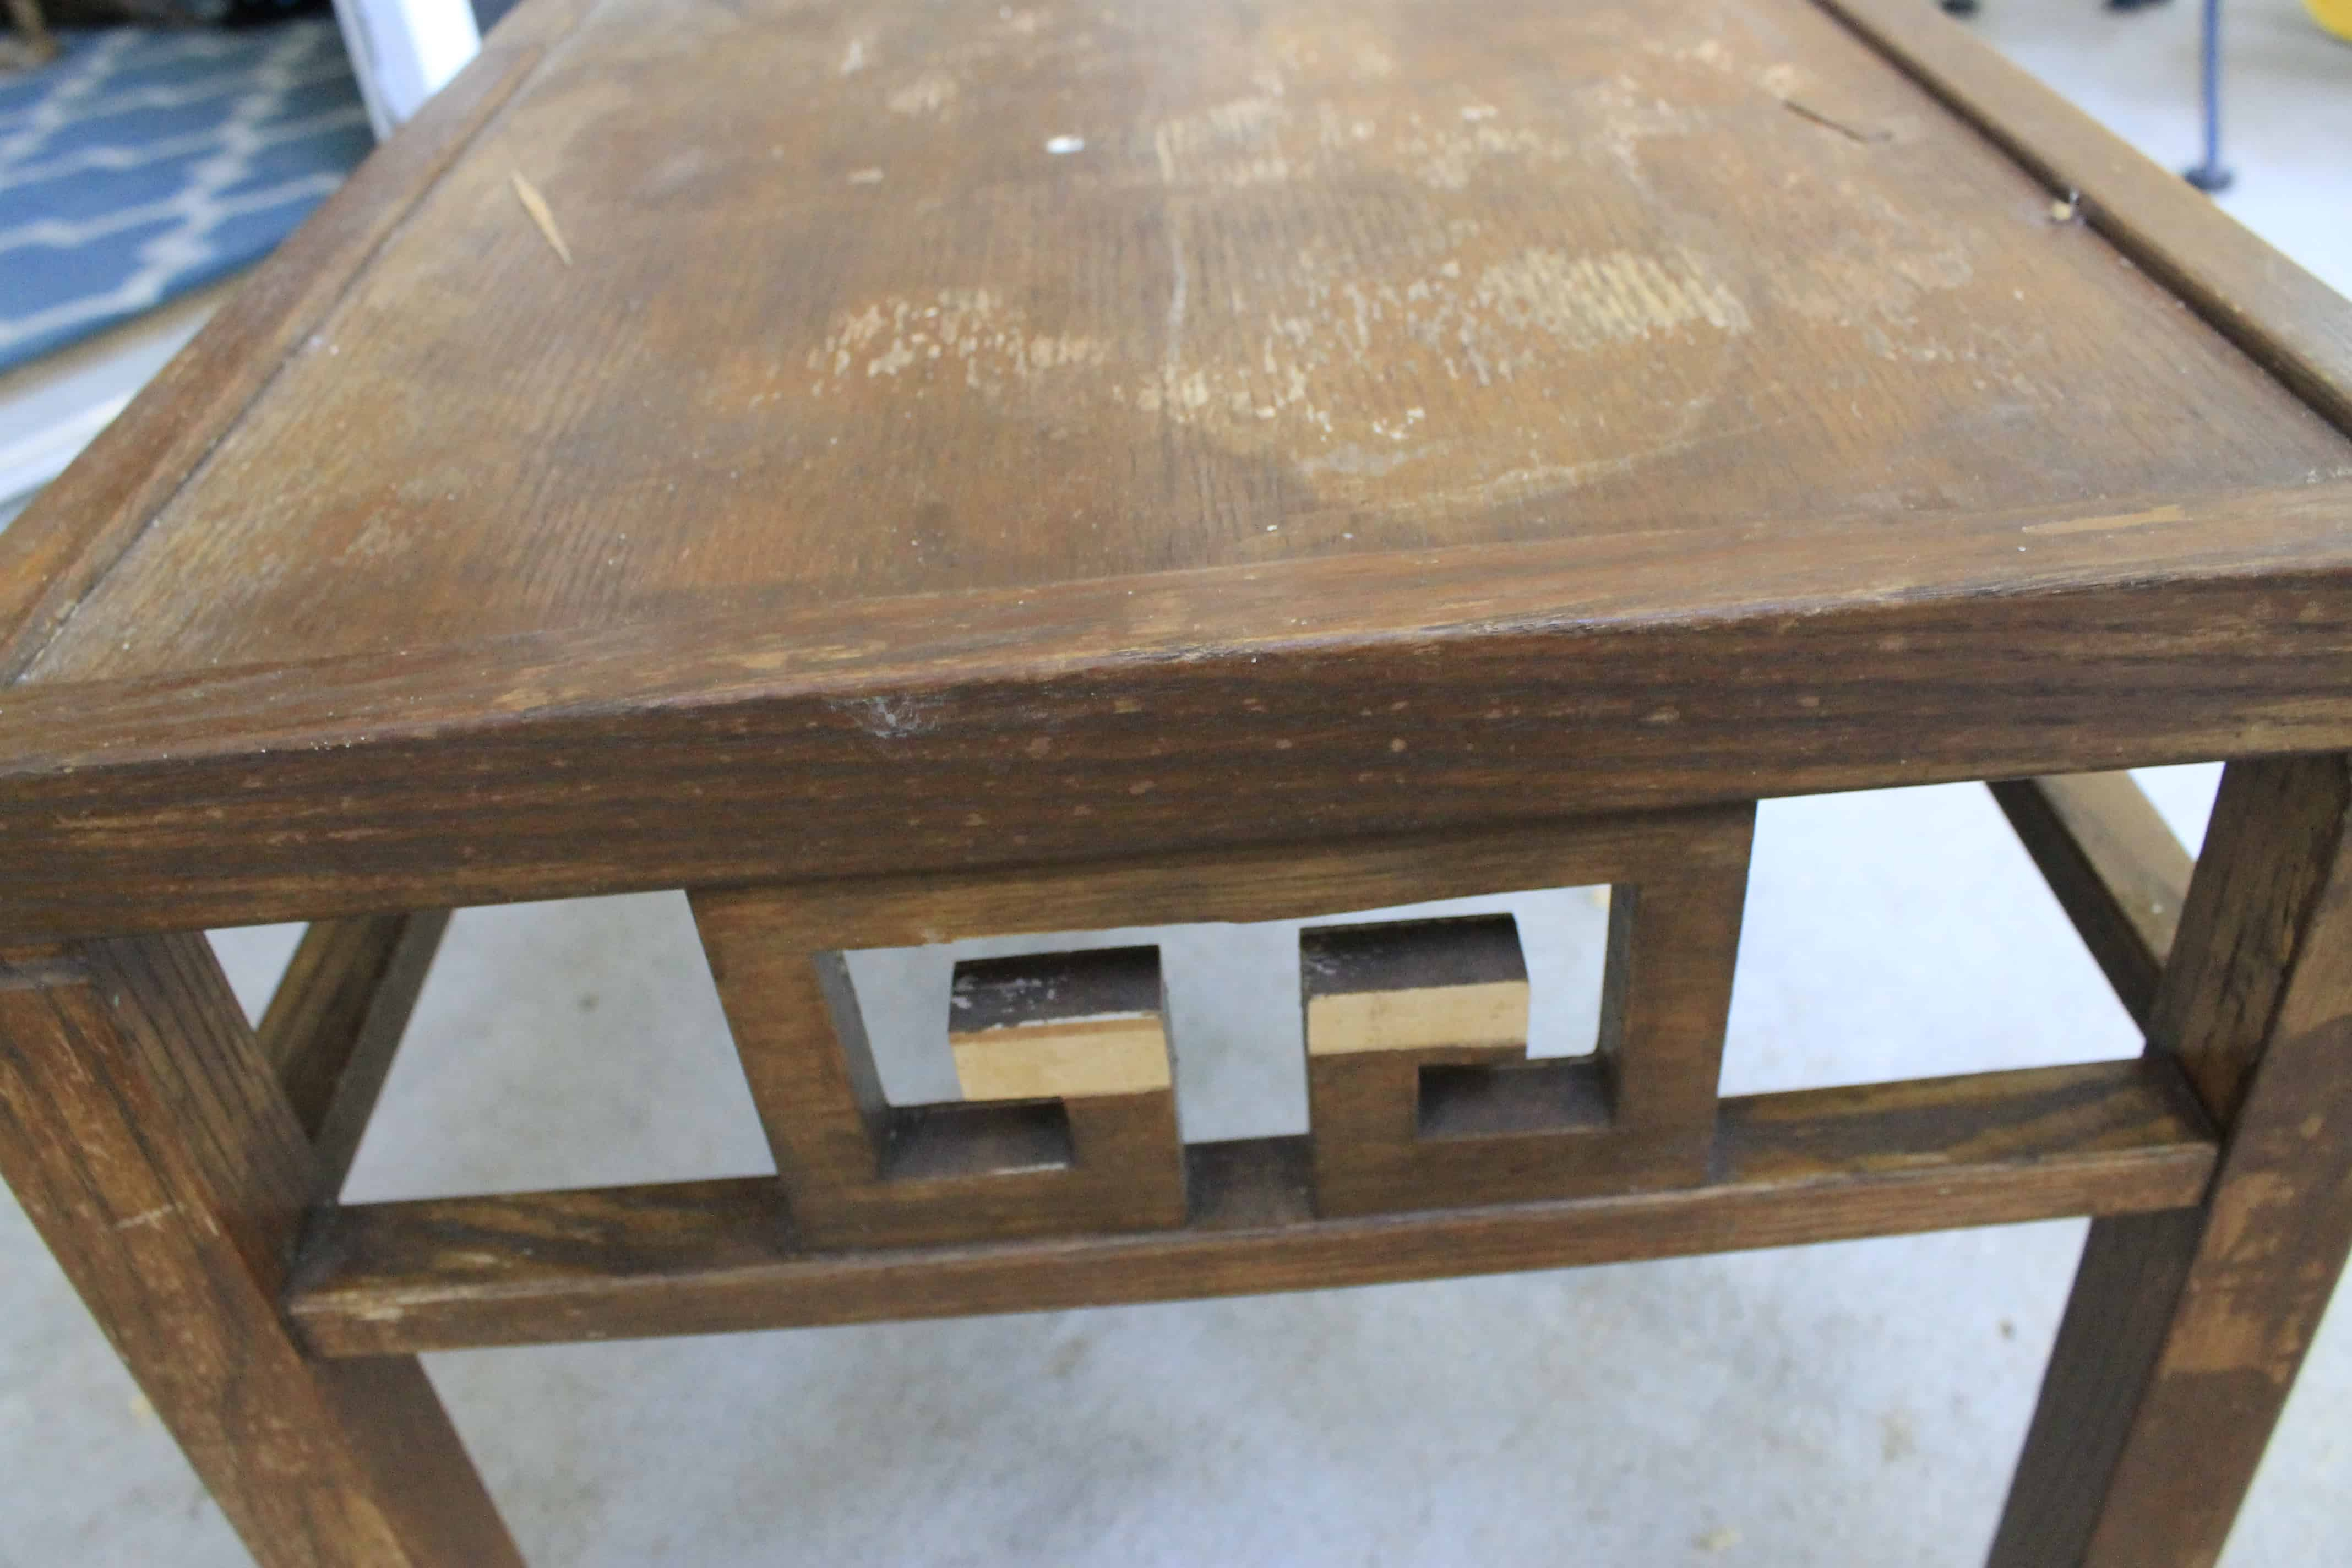 Making Over An Old Coffee Table   Charleston Crafted